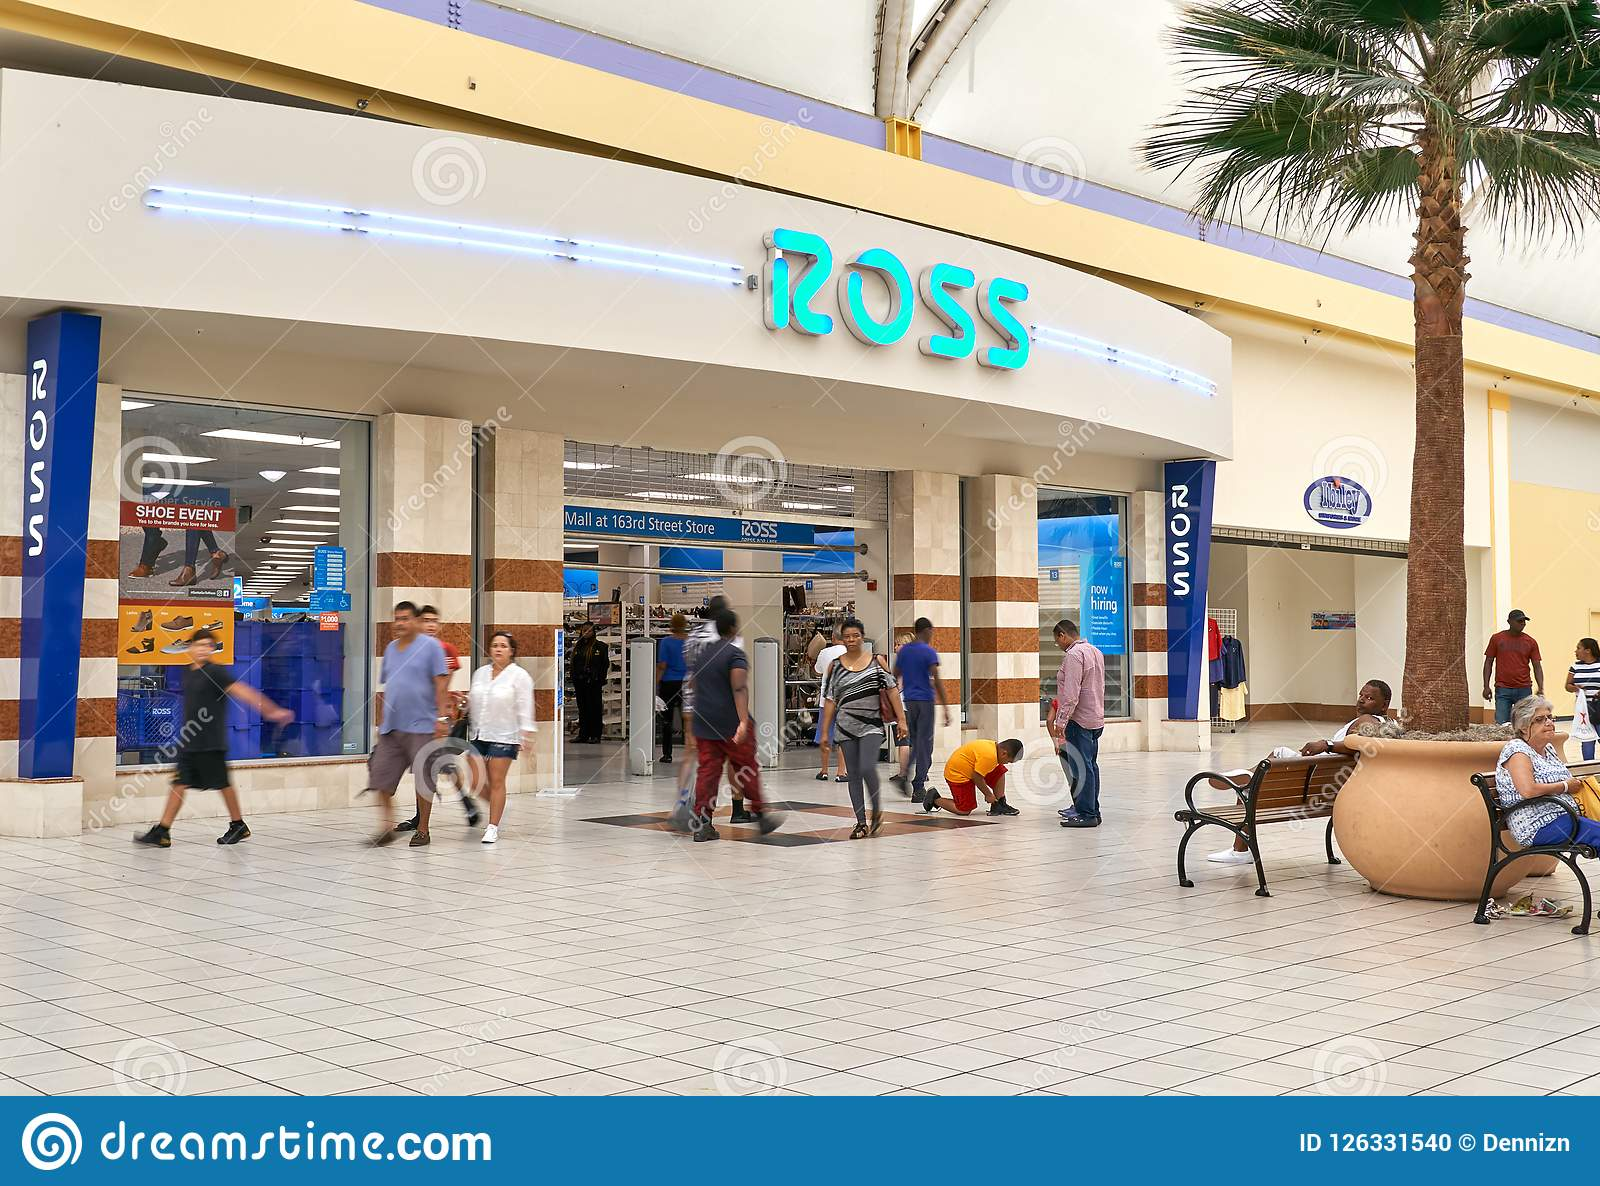 e2a9c193b MIAMI, USA - AUGUST 22, 2018: Ross store entrance and logo. Ross Stores is  an American chain of off-price department stores